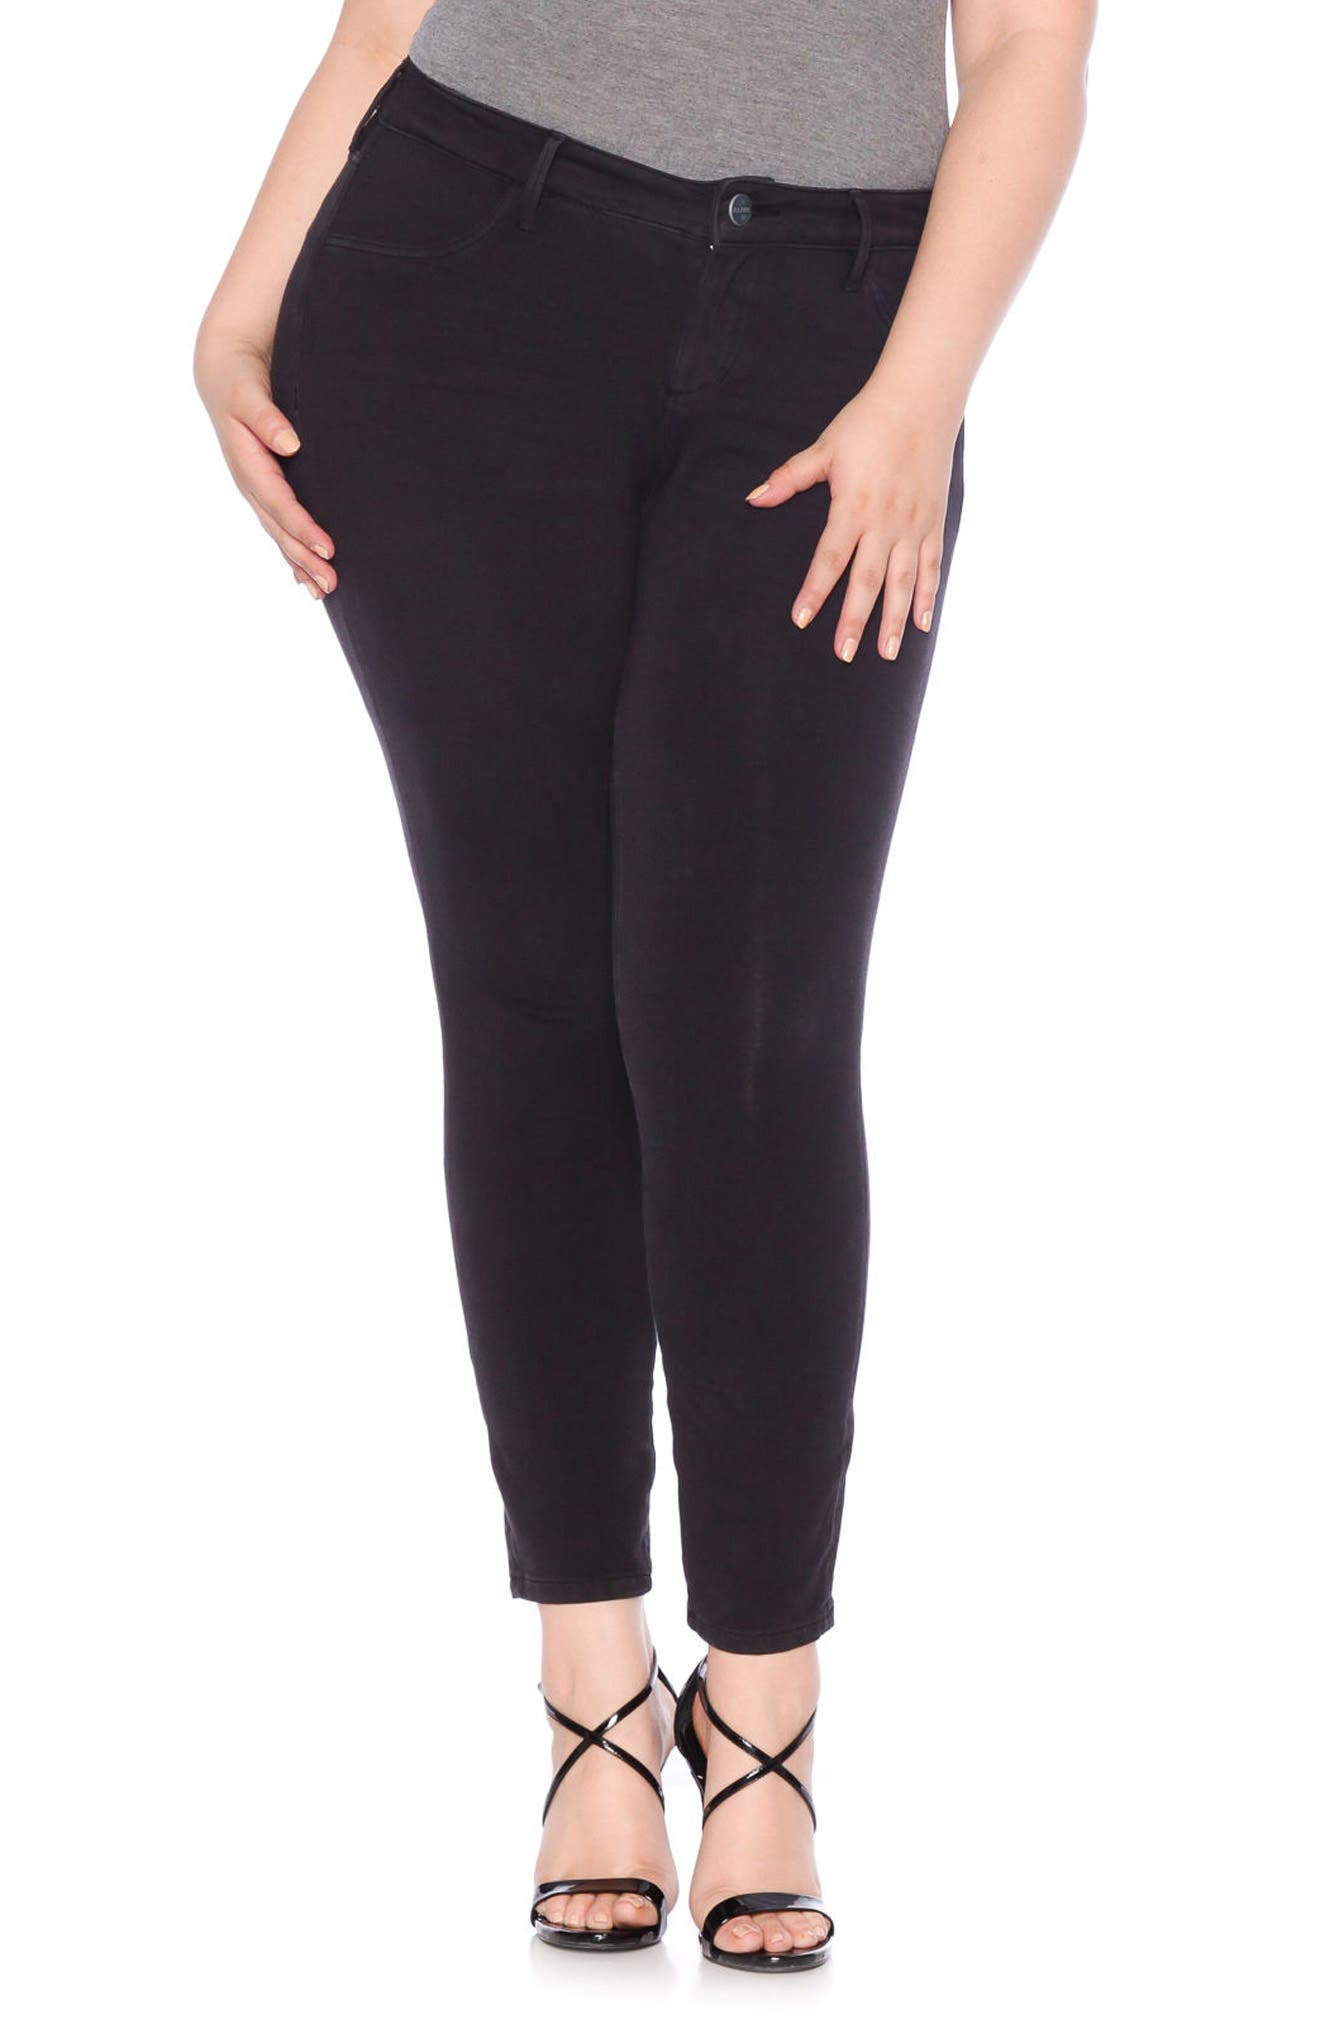 SLINK JEANS Super Knit Denim Leggings in Black